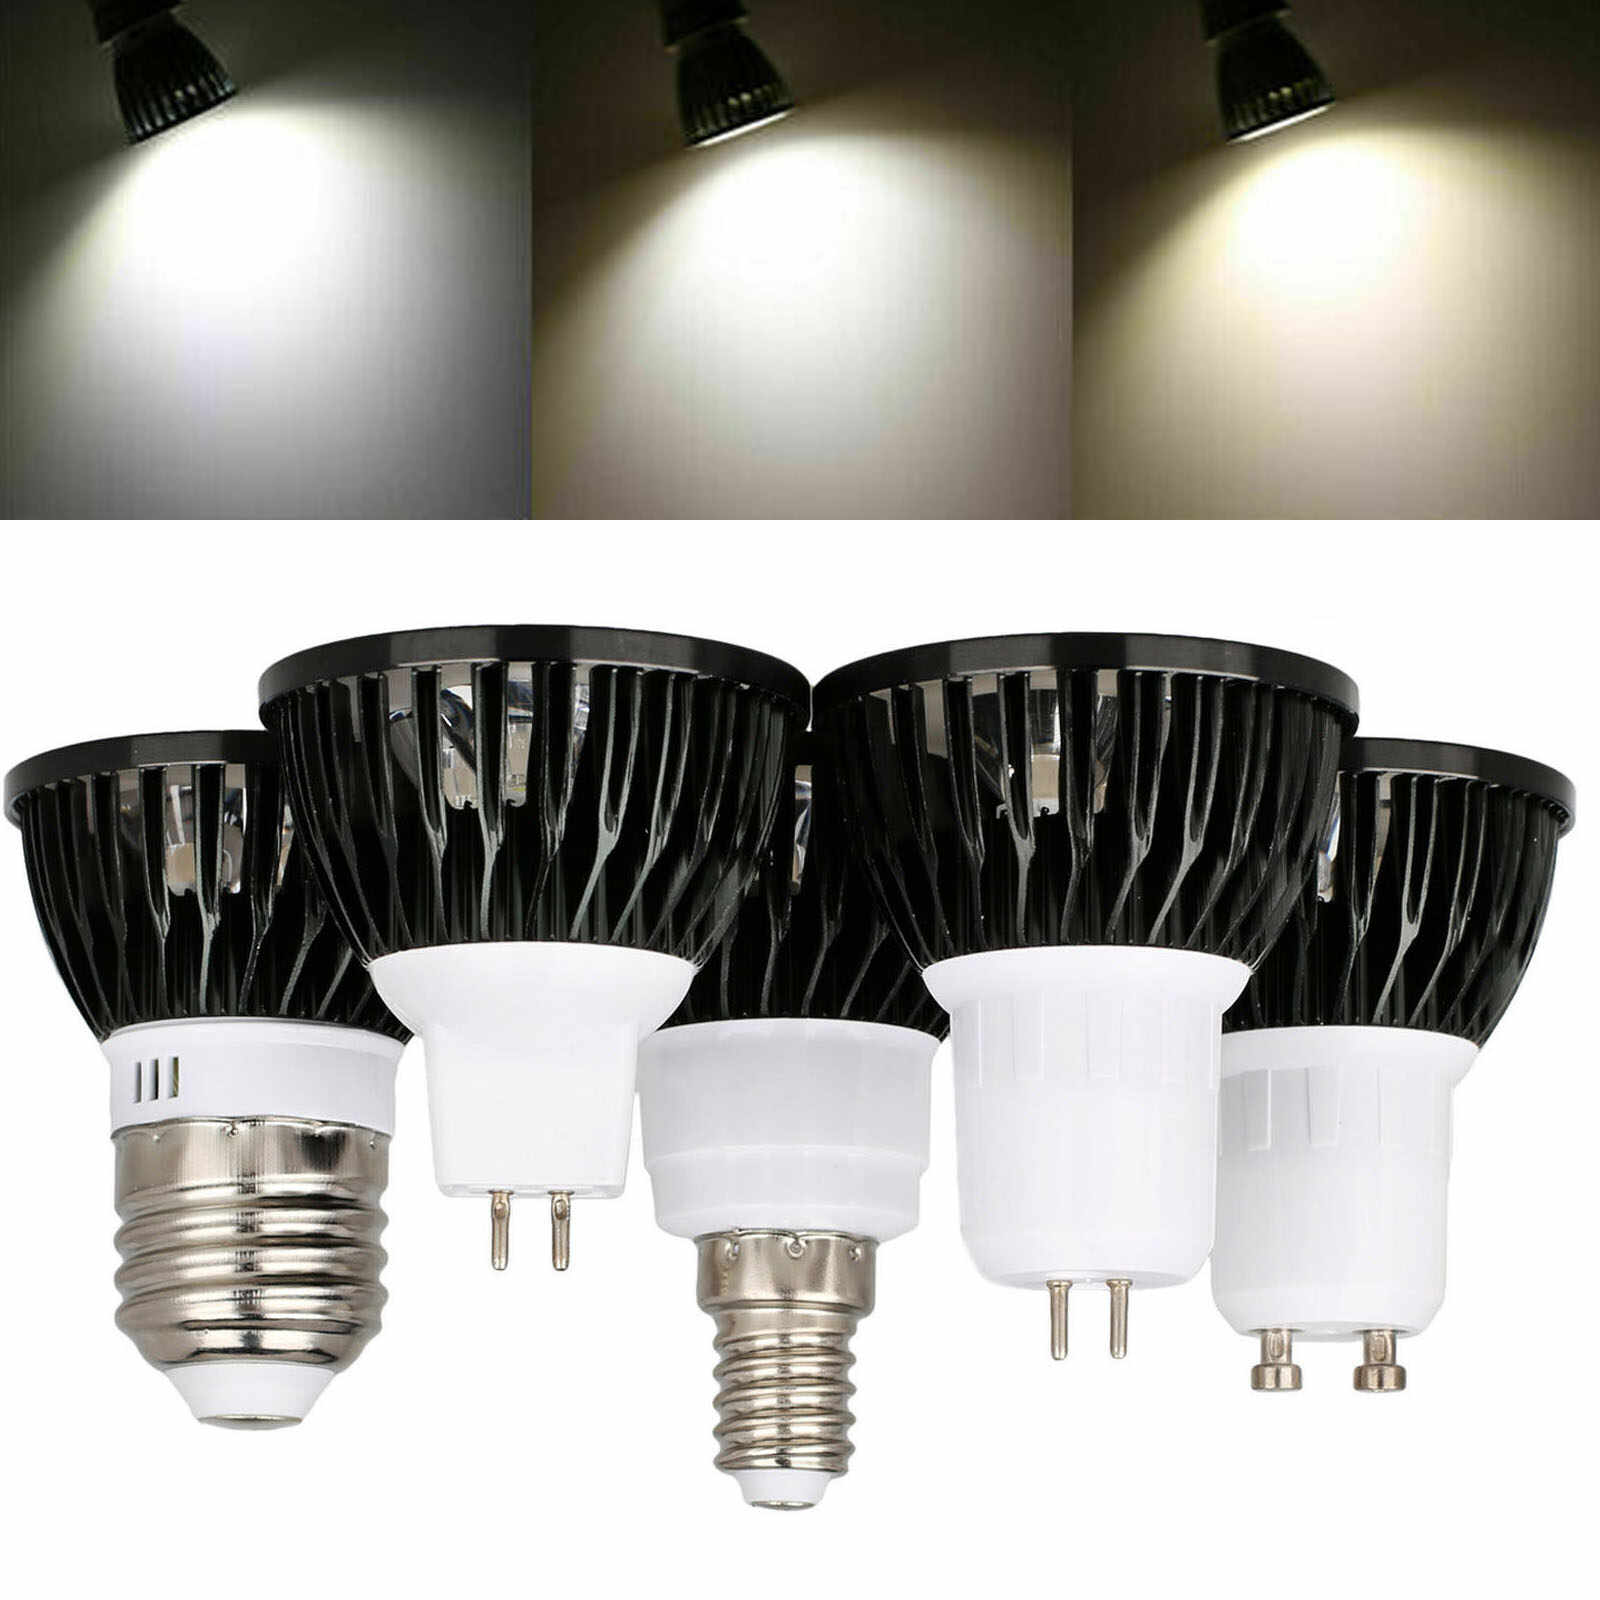 Replacement for gu10 Bulbs 3//5w Warm//Neutral//RGB lights use 230v Lamp